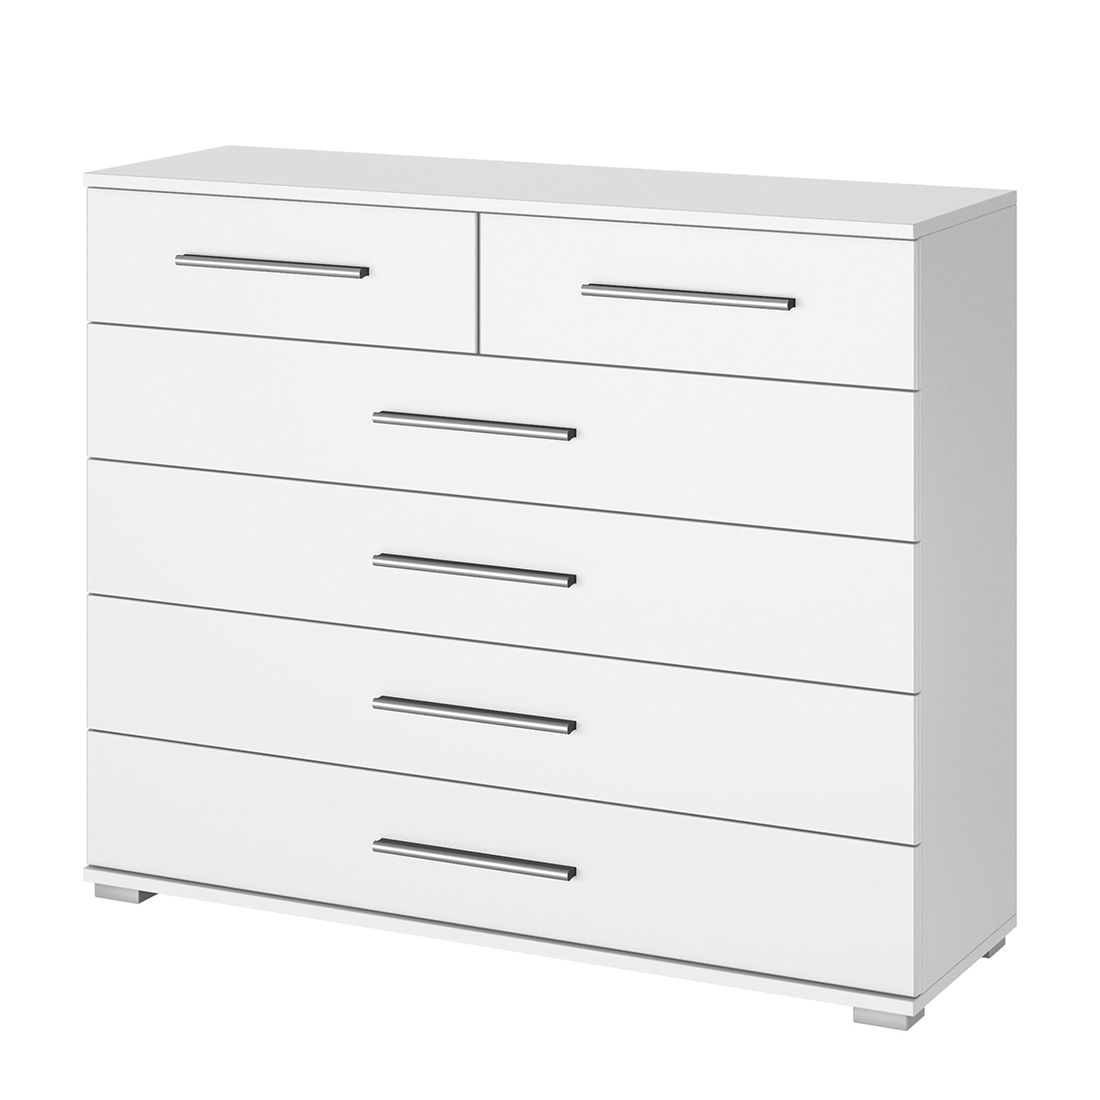 Commode Quadra IV - Blanc alpin, Rauch Packs